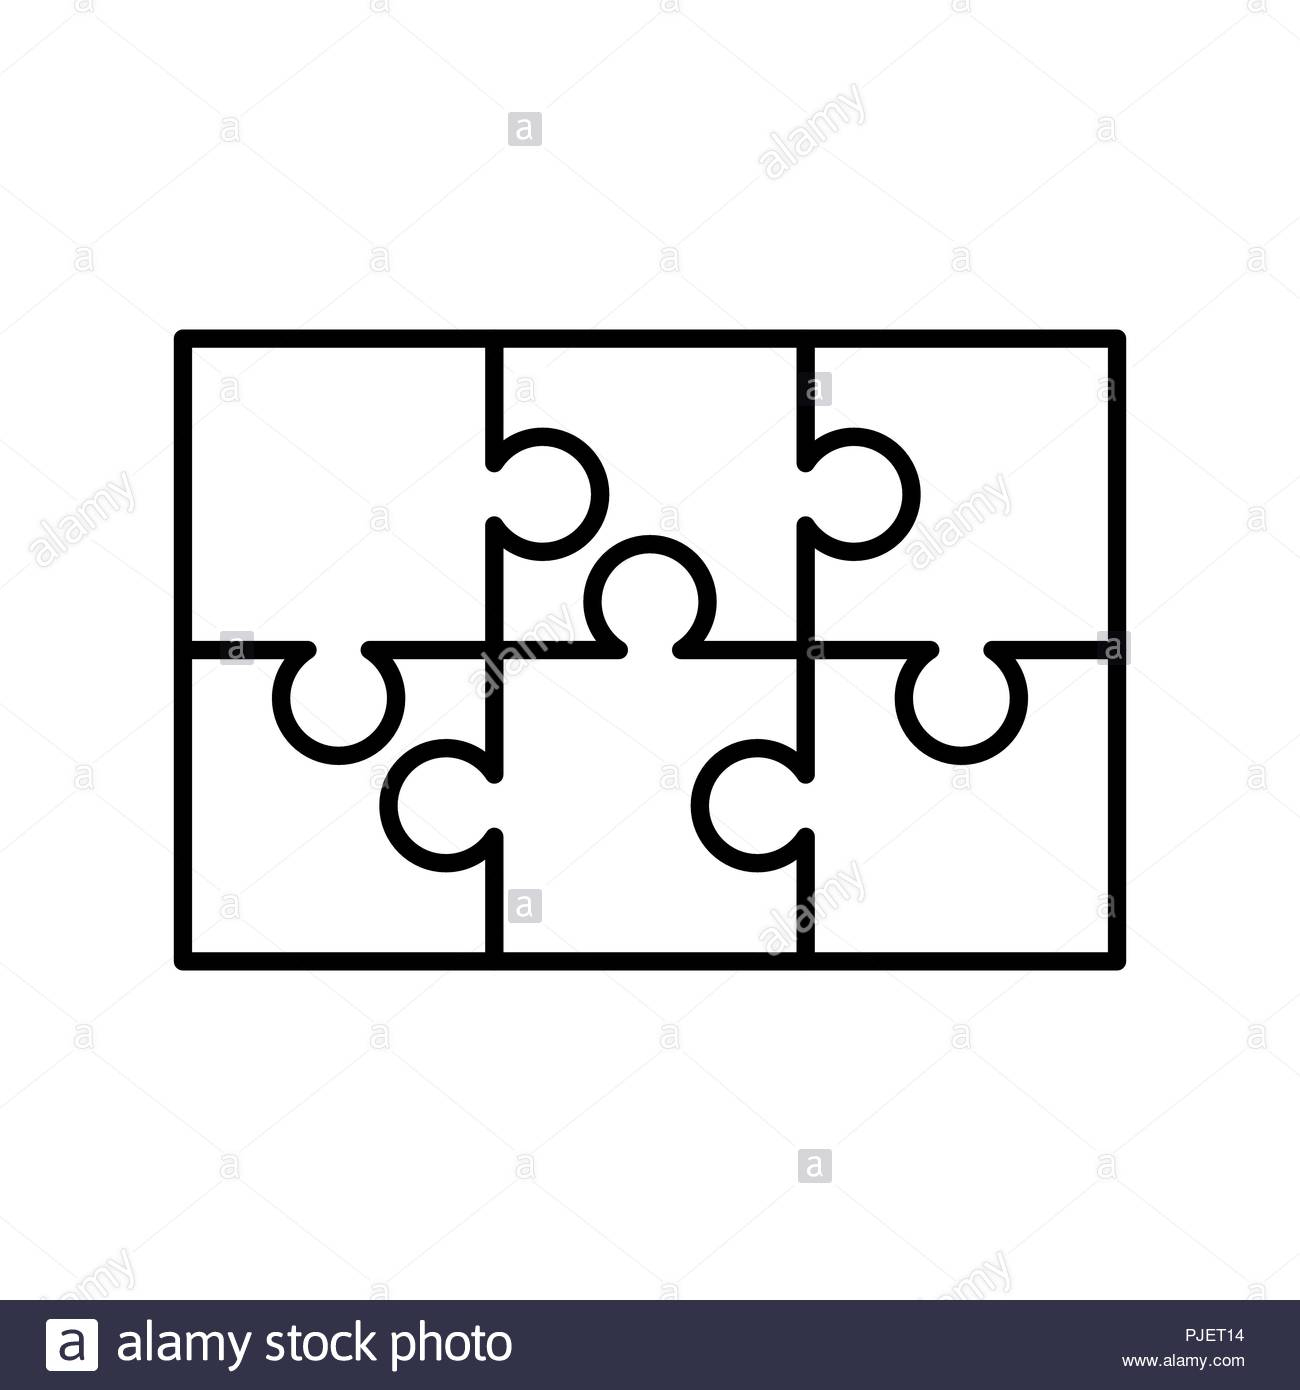 6 White Puzzles Pieces Arranged In A Rectangle Shape. Jigsaw Puzzle - 6 Piece Printable Puzzle